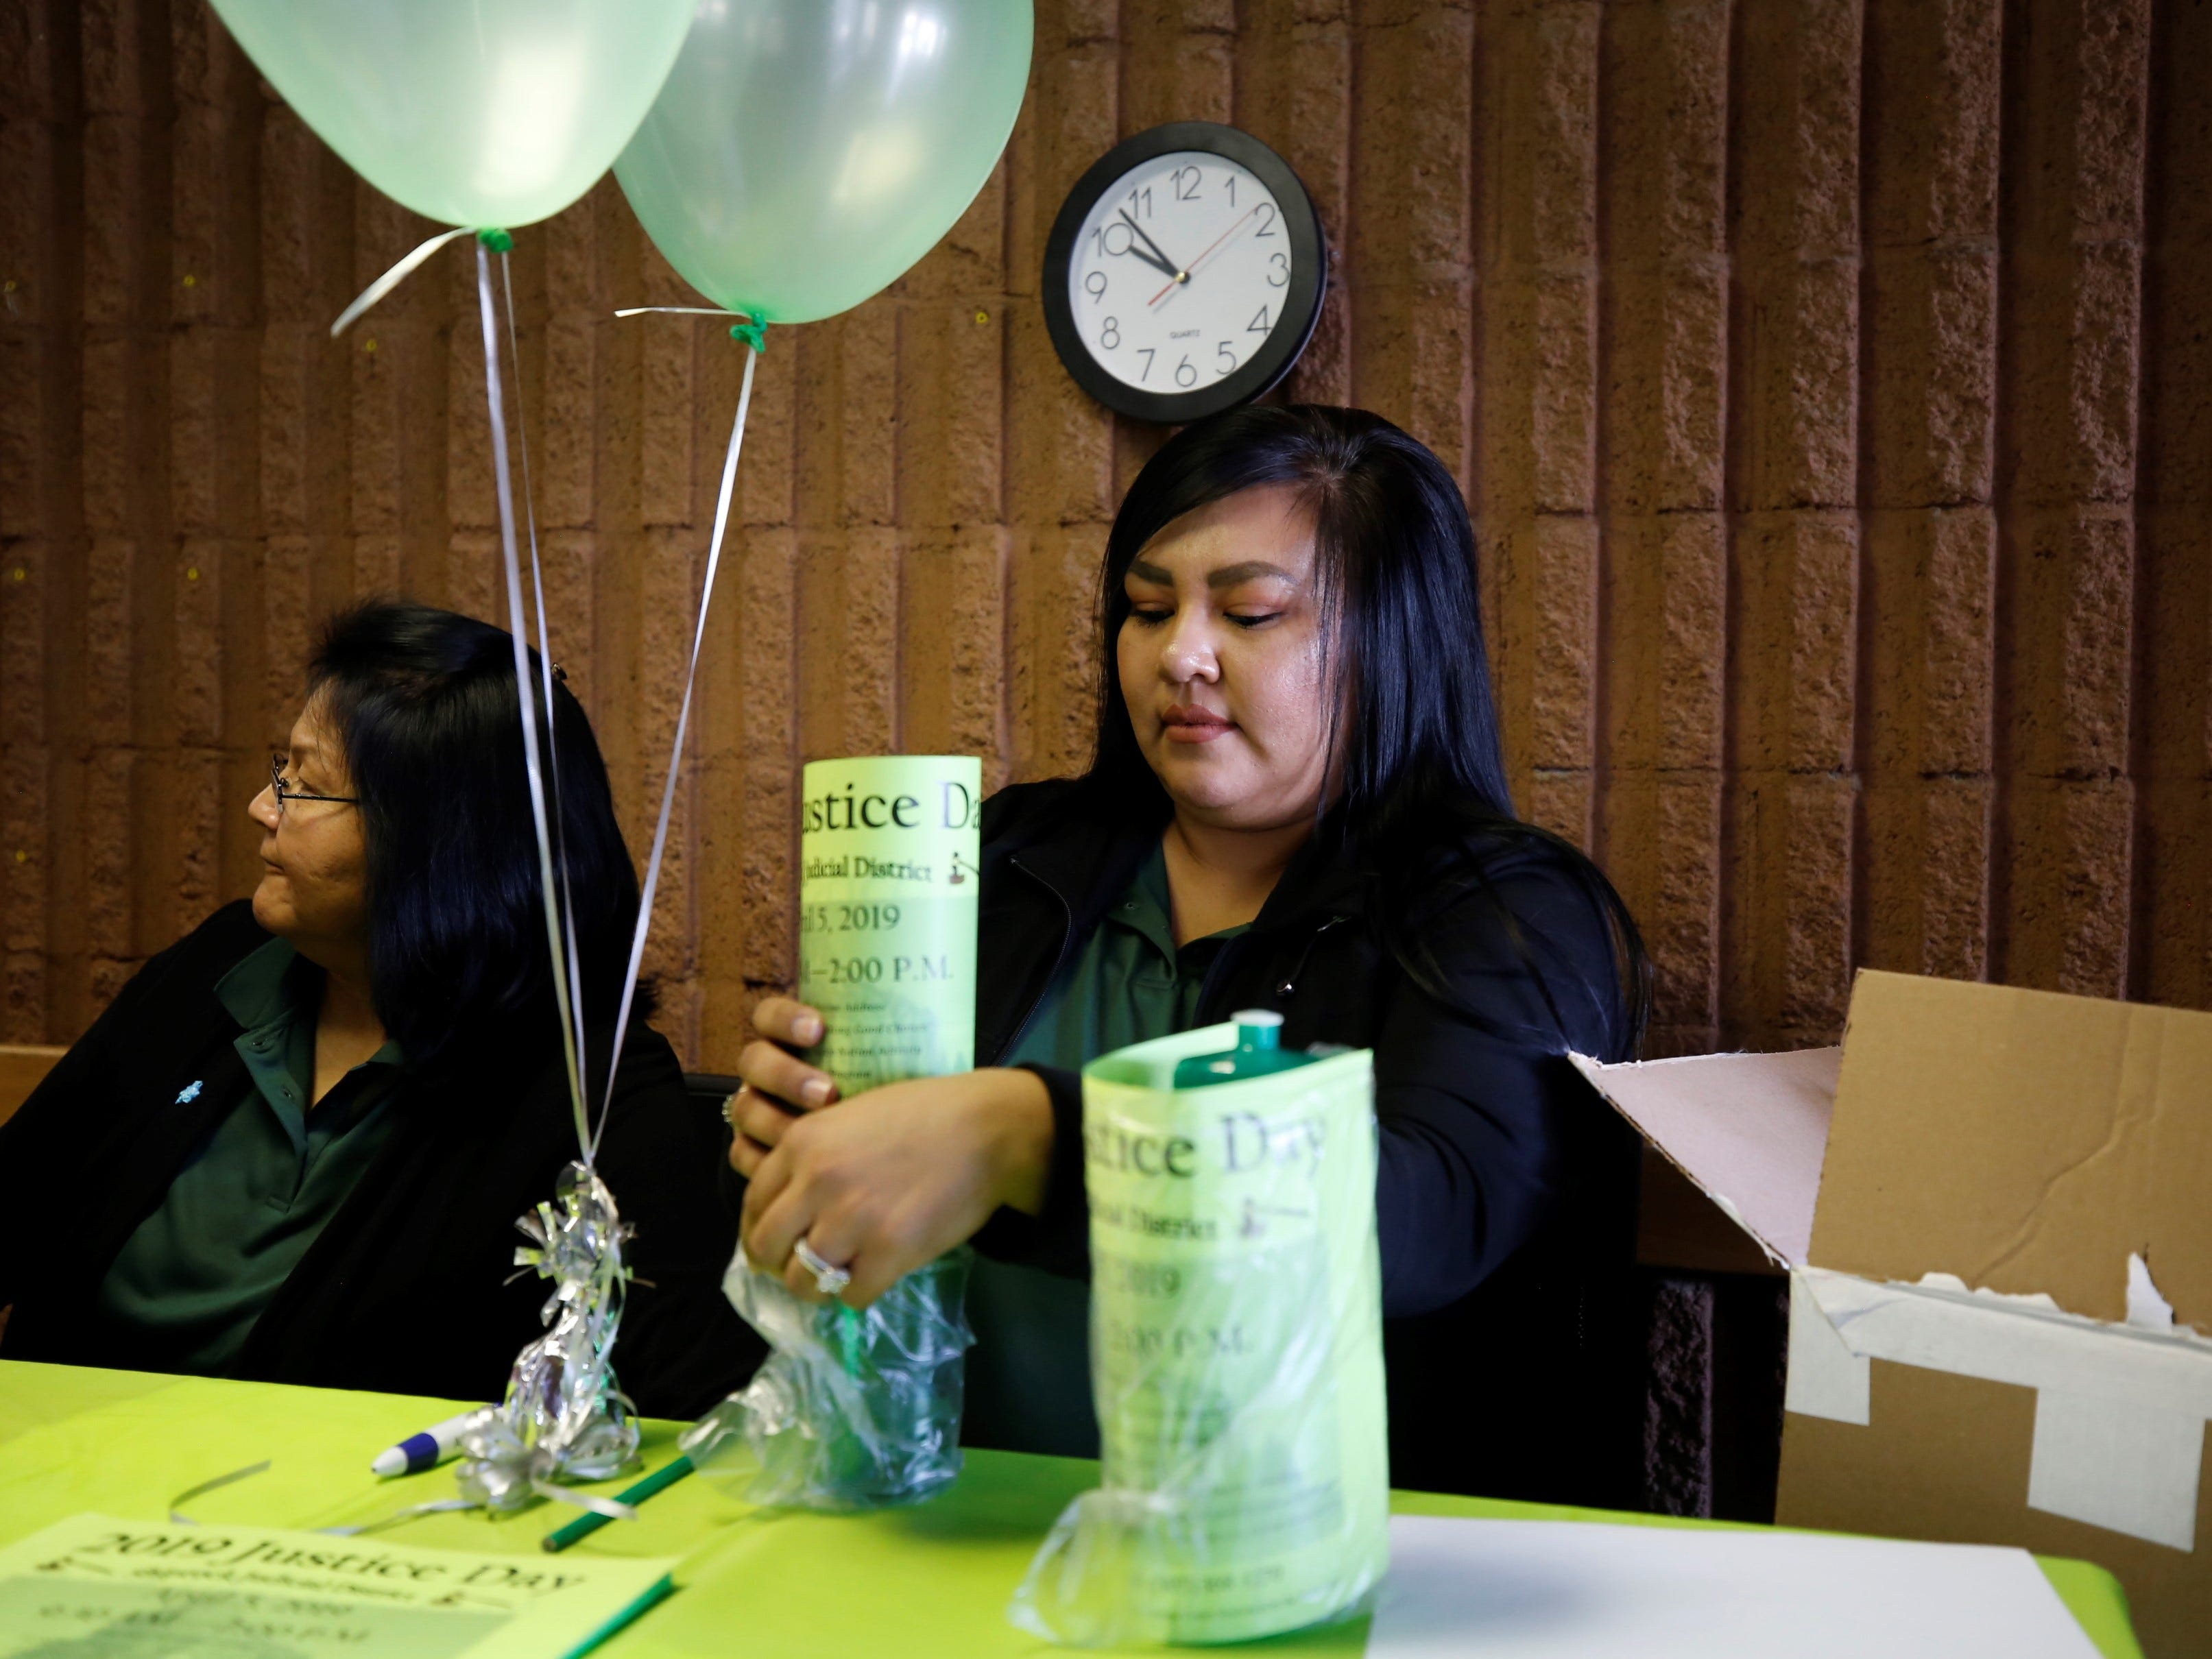 Shiprock Judicial District court employee Marla Lansing readies water bottles to give out to visitors during Justice Day at the court in Shiprock on Friday.